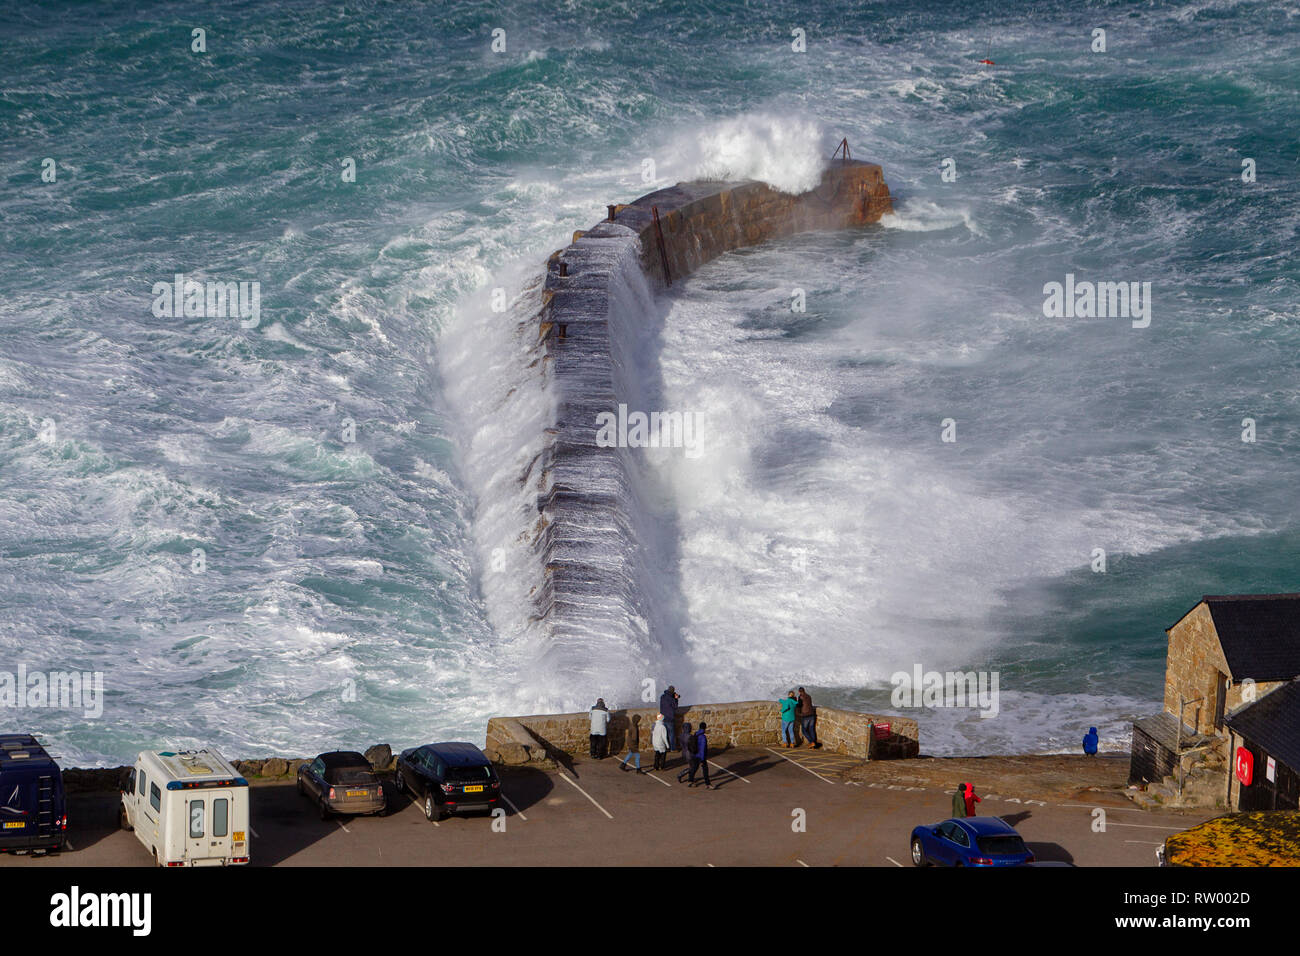 Sennen, Cornwall, UK. 3rd  March 2019. Gale force winds and 20ft high waves lash the granite cliffs of Cornwall. Daring jumpers get caught by some huge waves swamping the pier. Credit: Mike Newman/Alamy Live News. - Stock Image